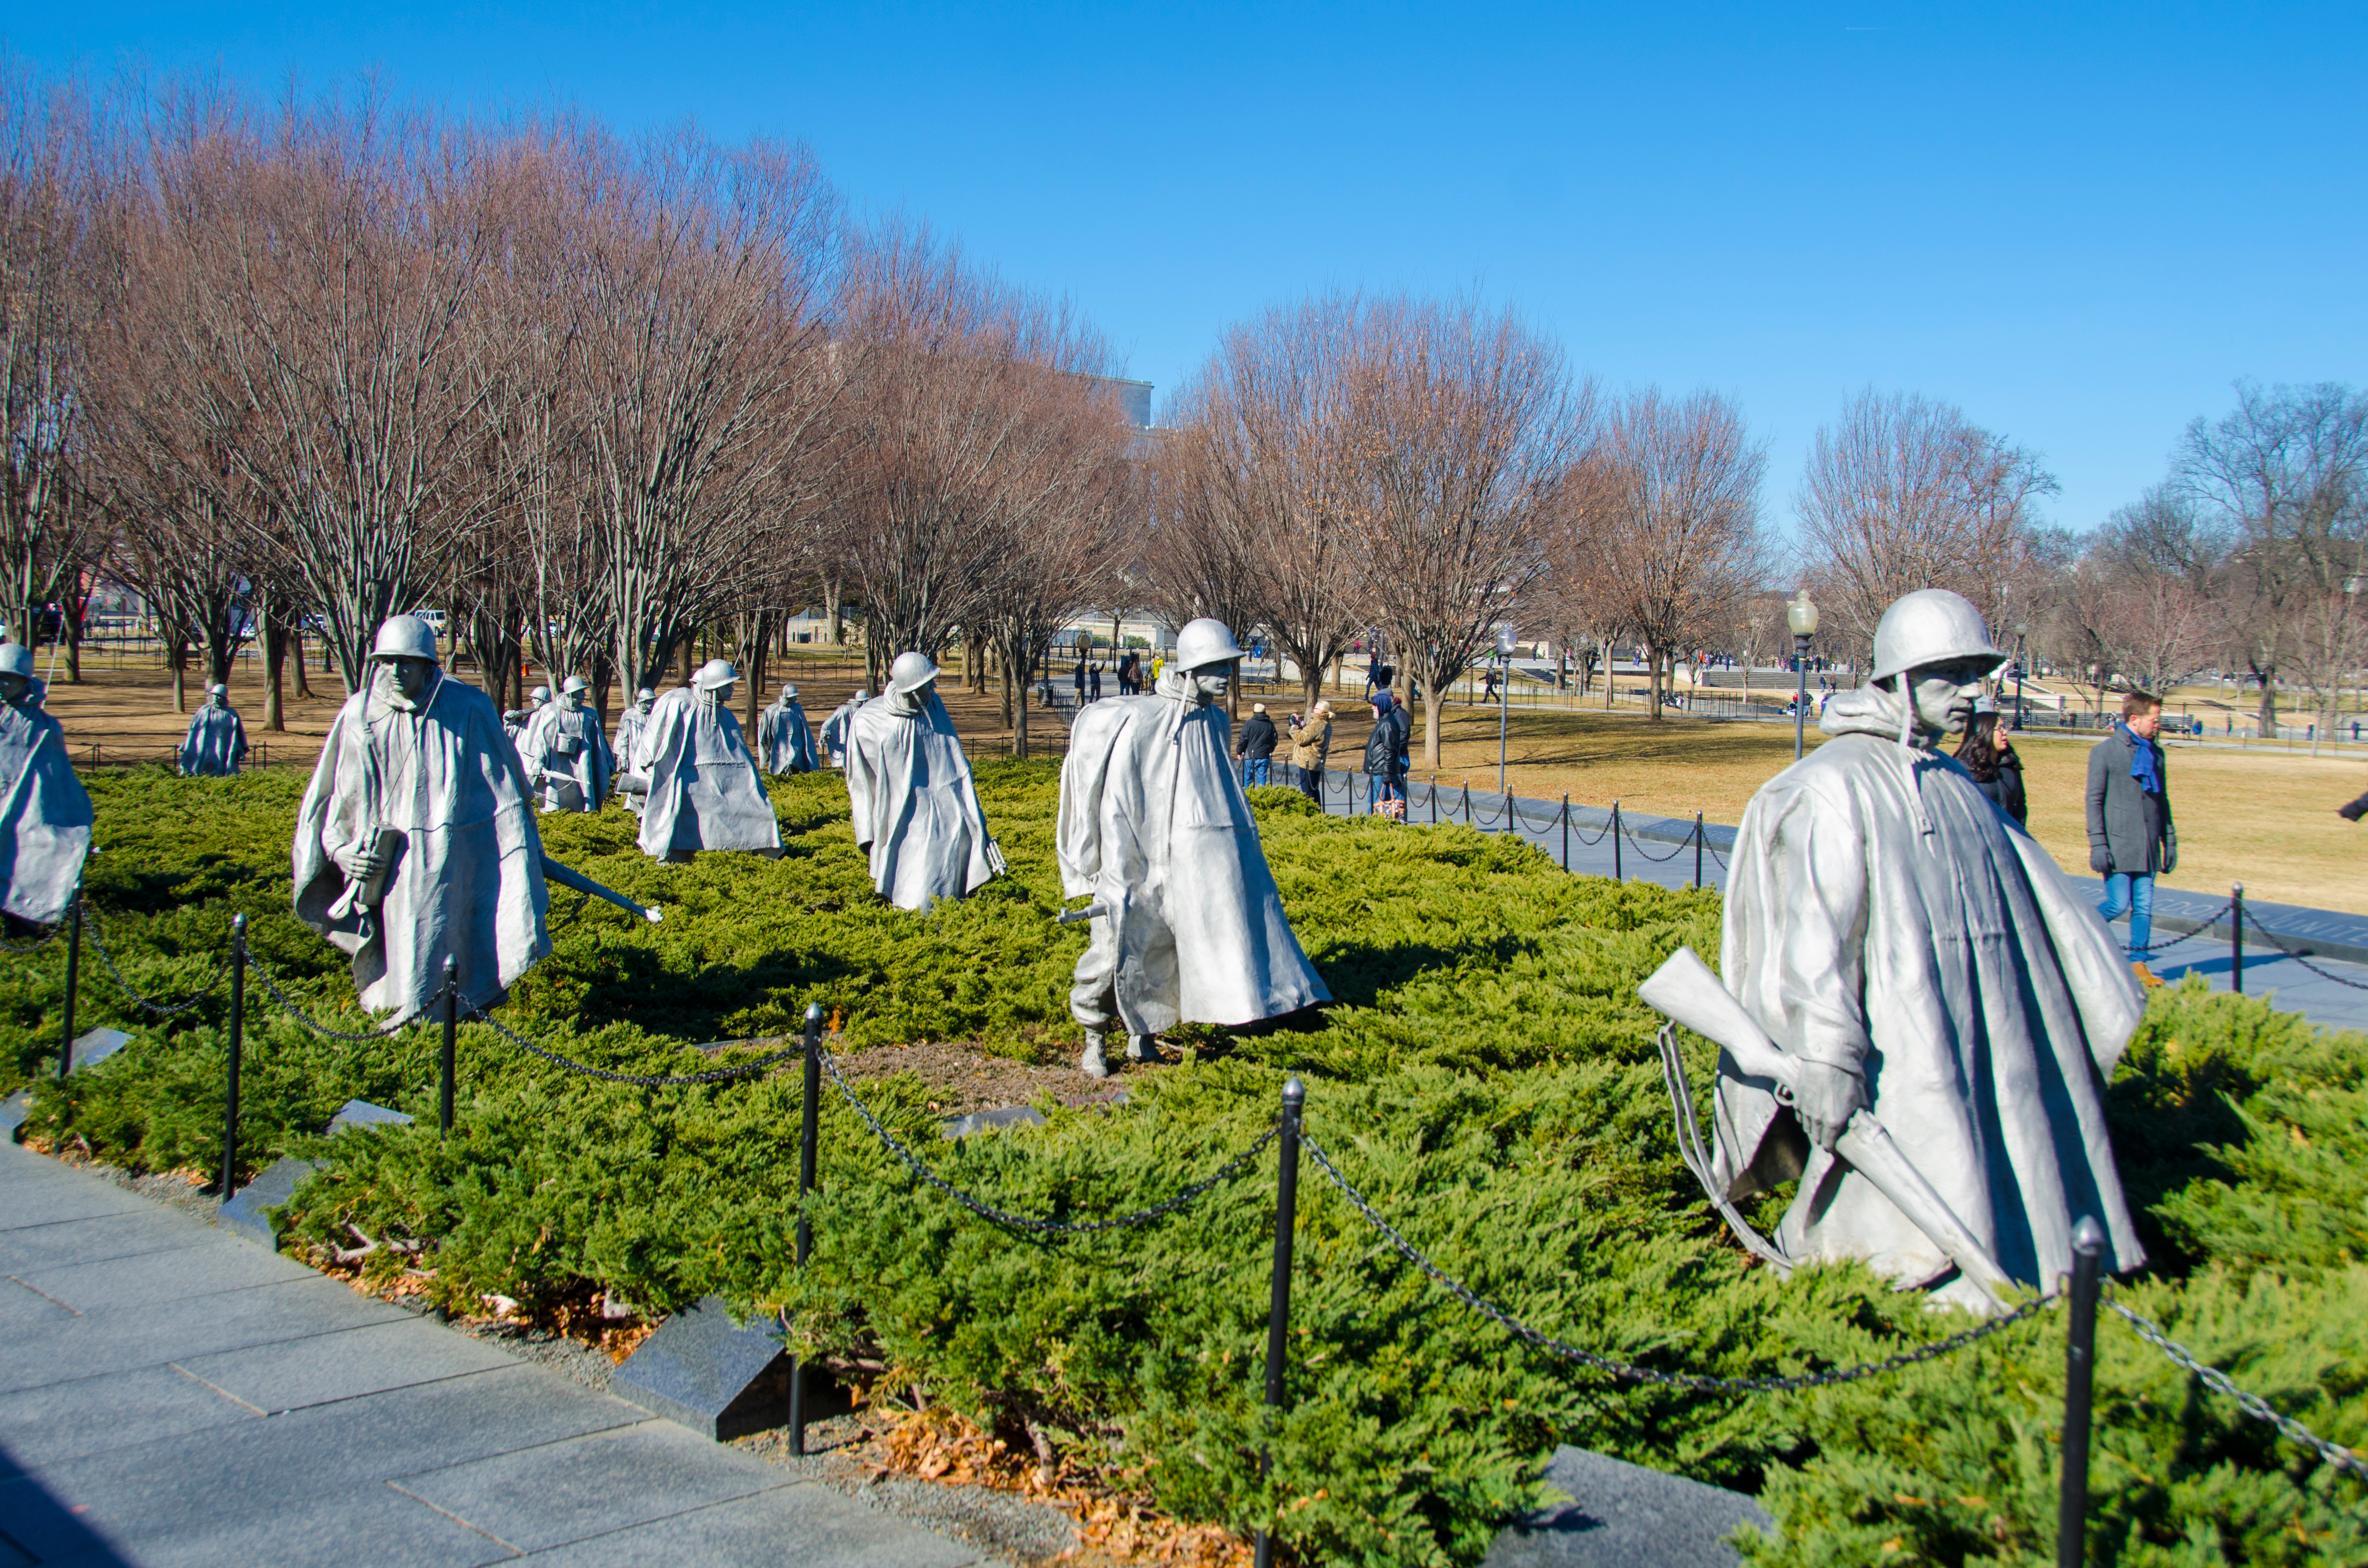 Korean War Veterans Memorial in Washington D.C. SHUTTERSTOCK/Cristi Popescu